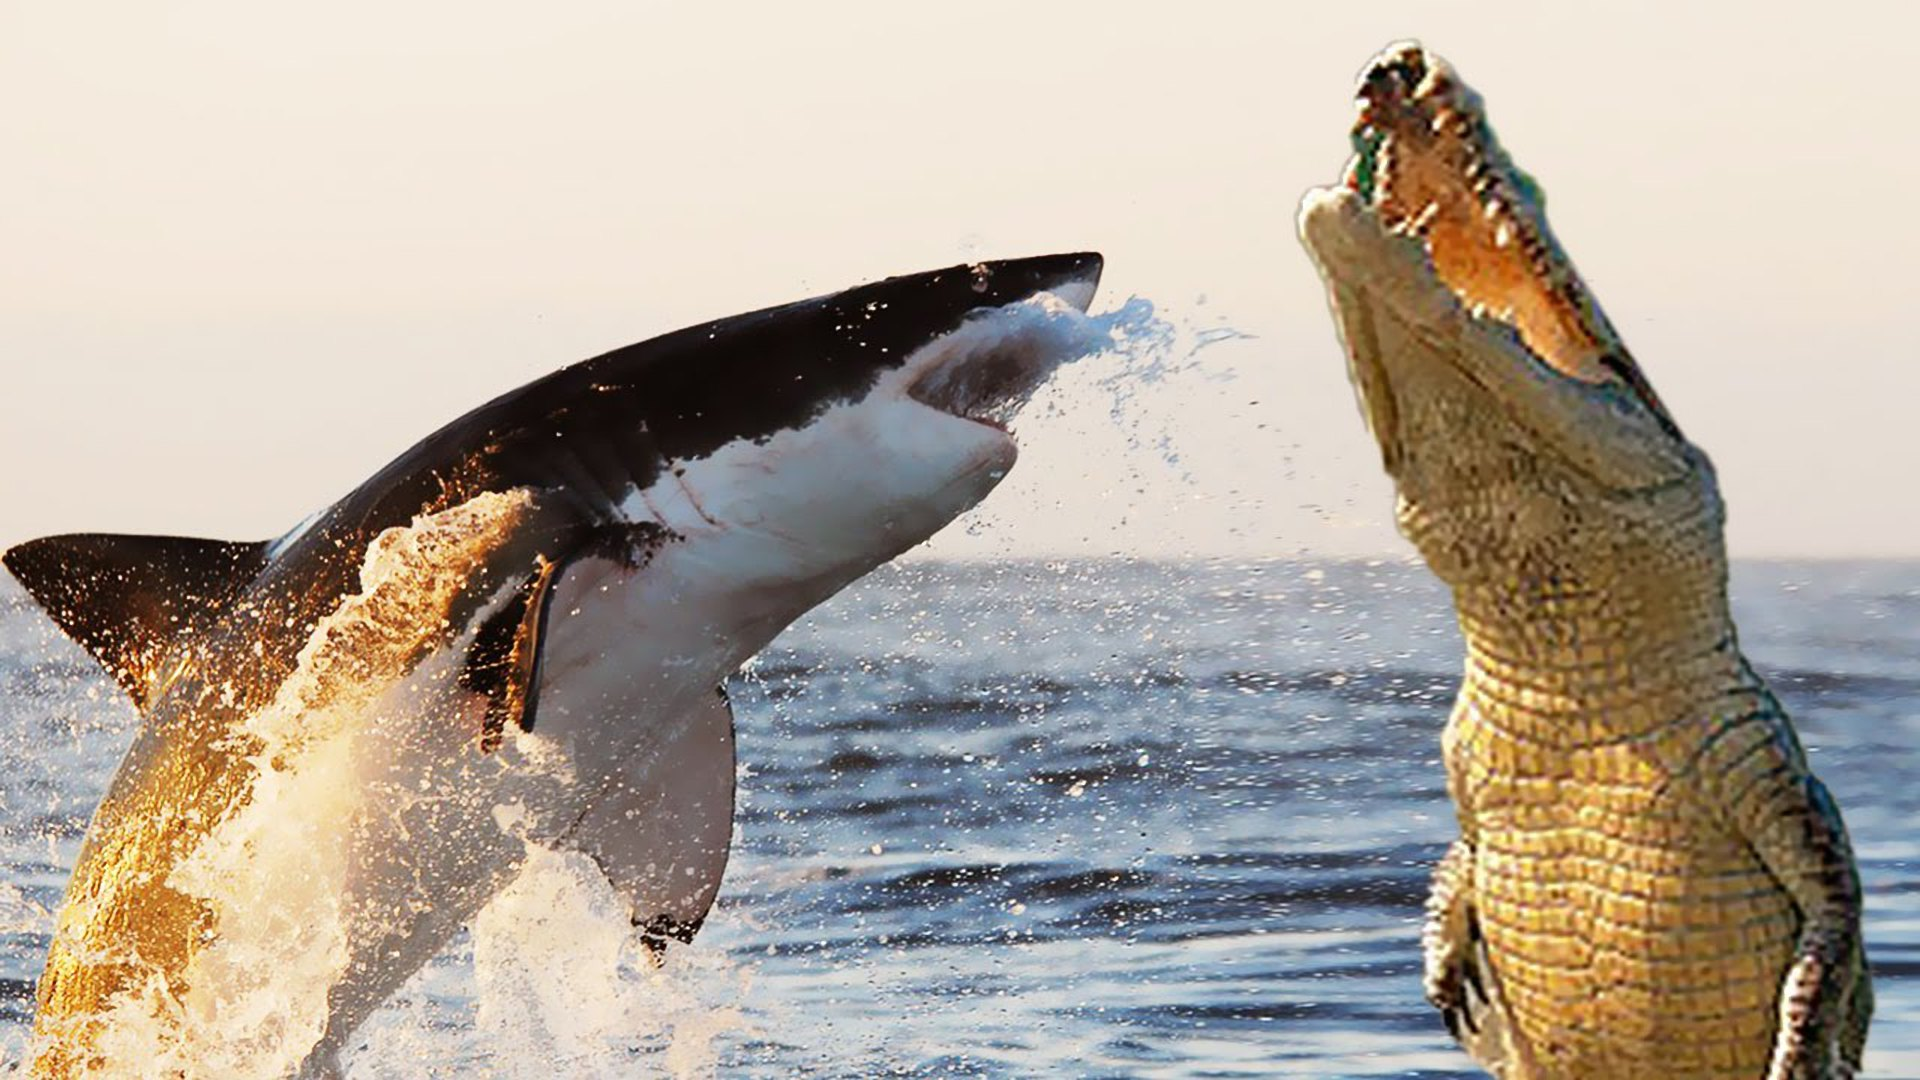 Shark vs crocodile.